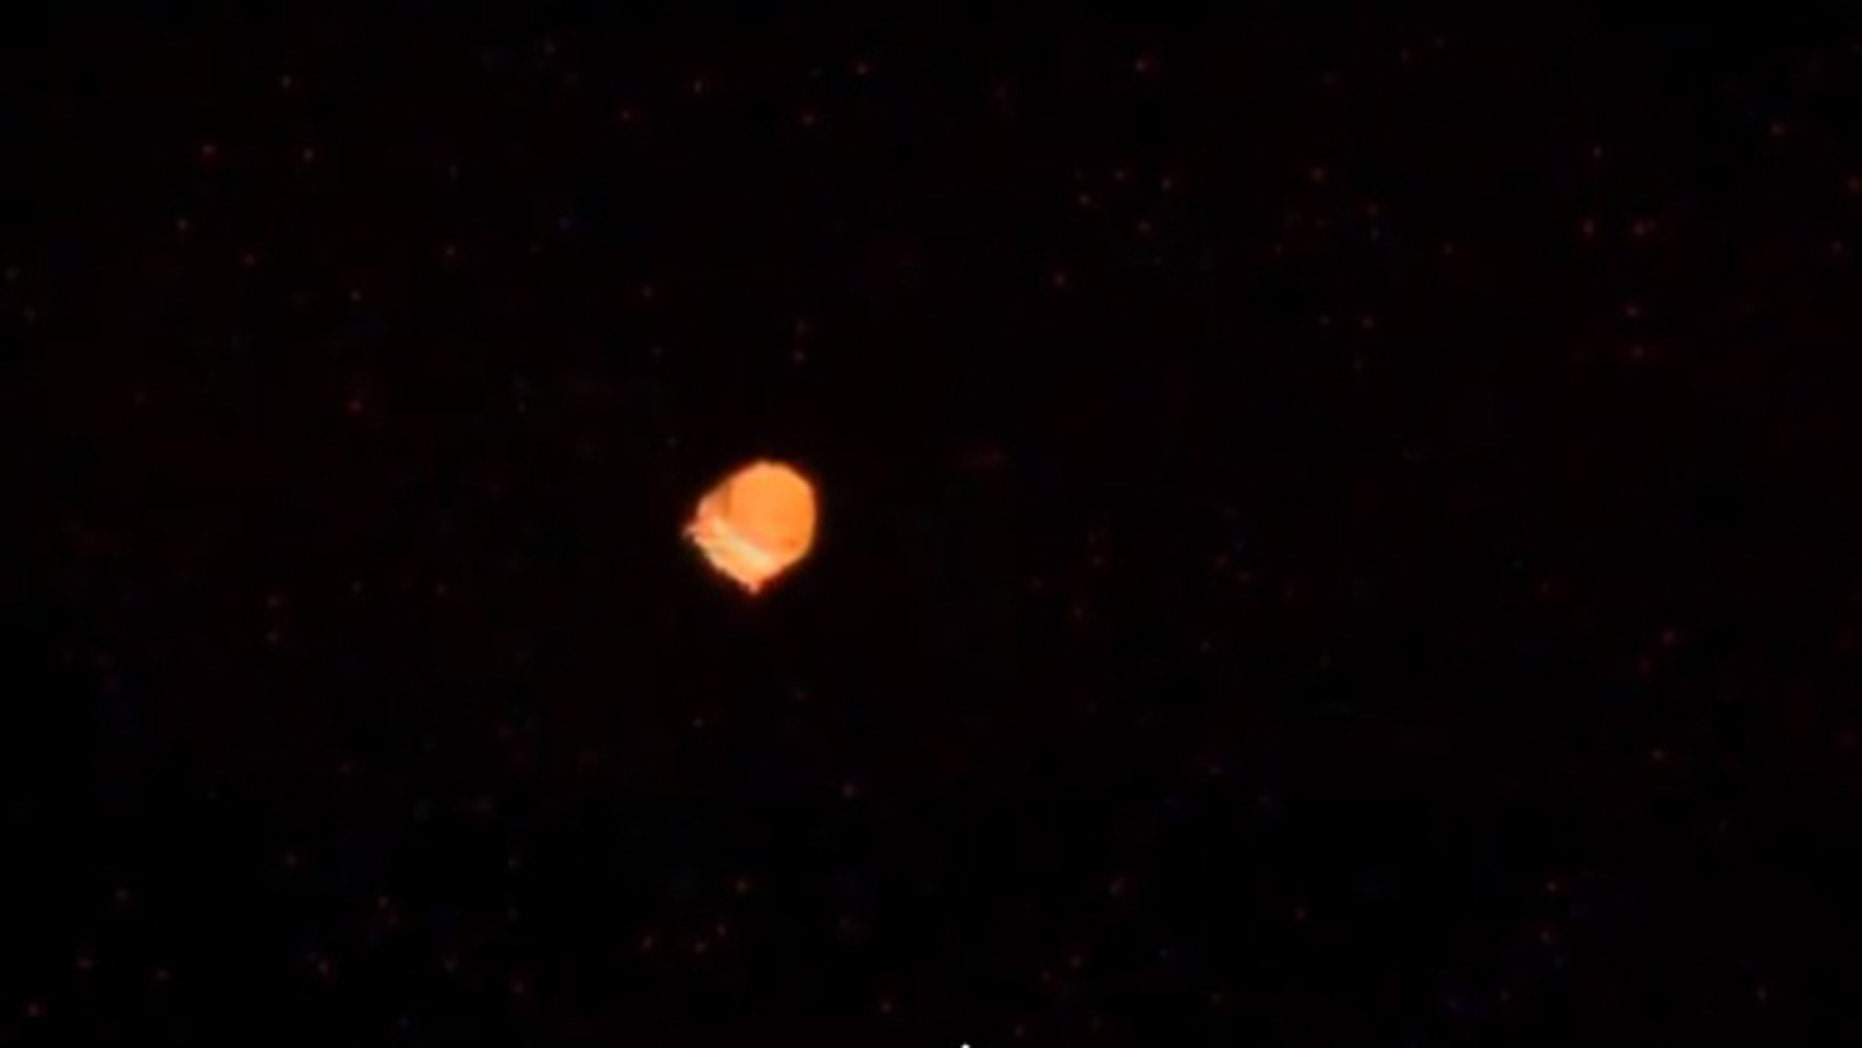 NASA astronaut Chirs Cassidy spied this object floating past the International Space Station.